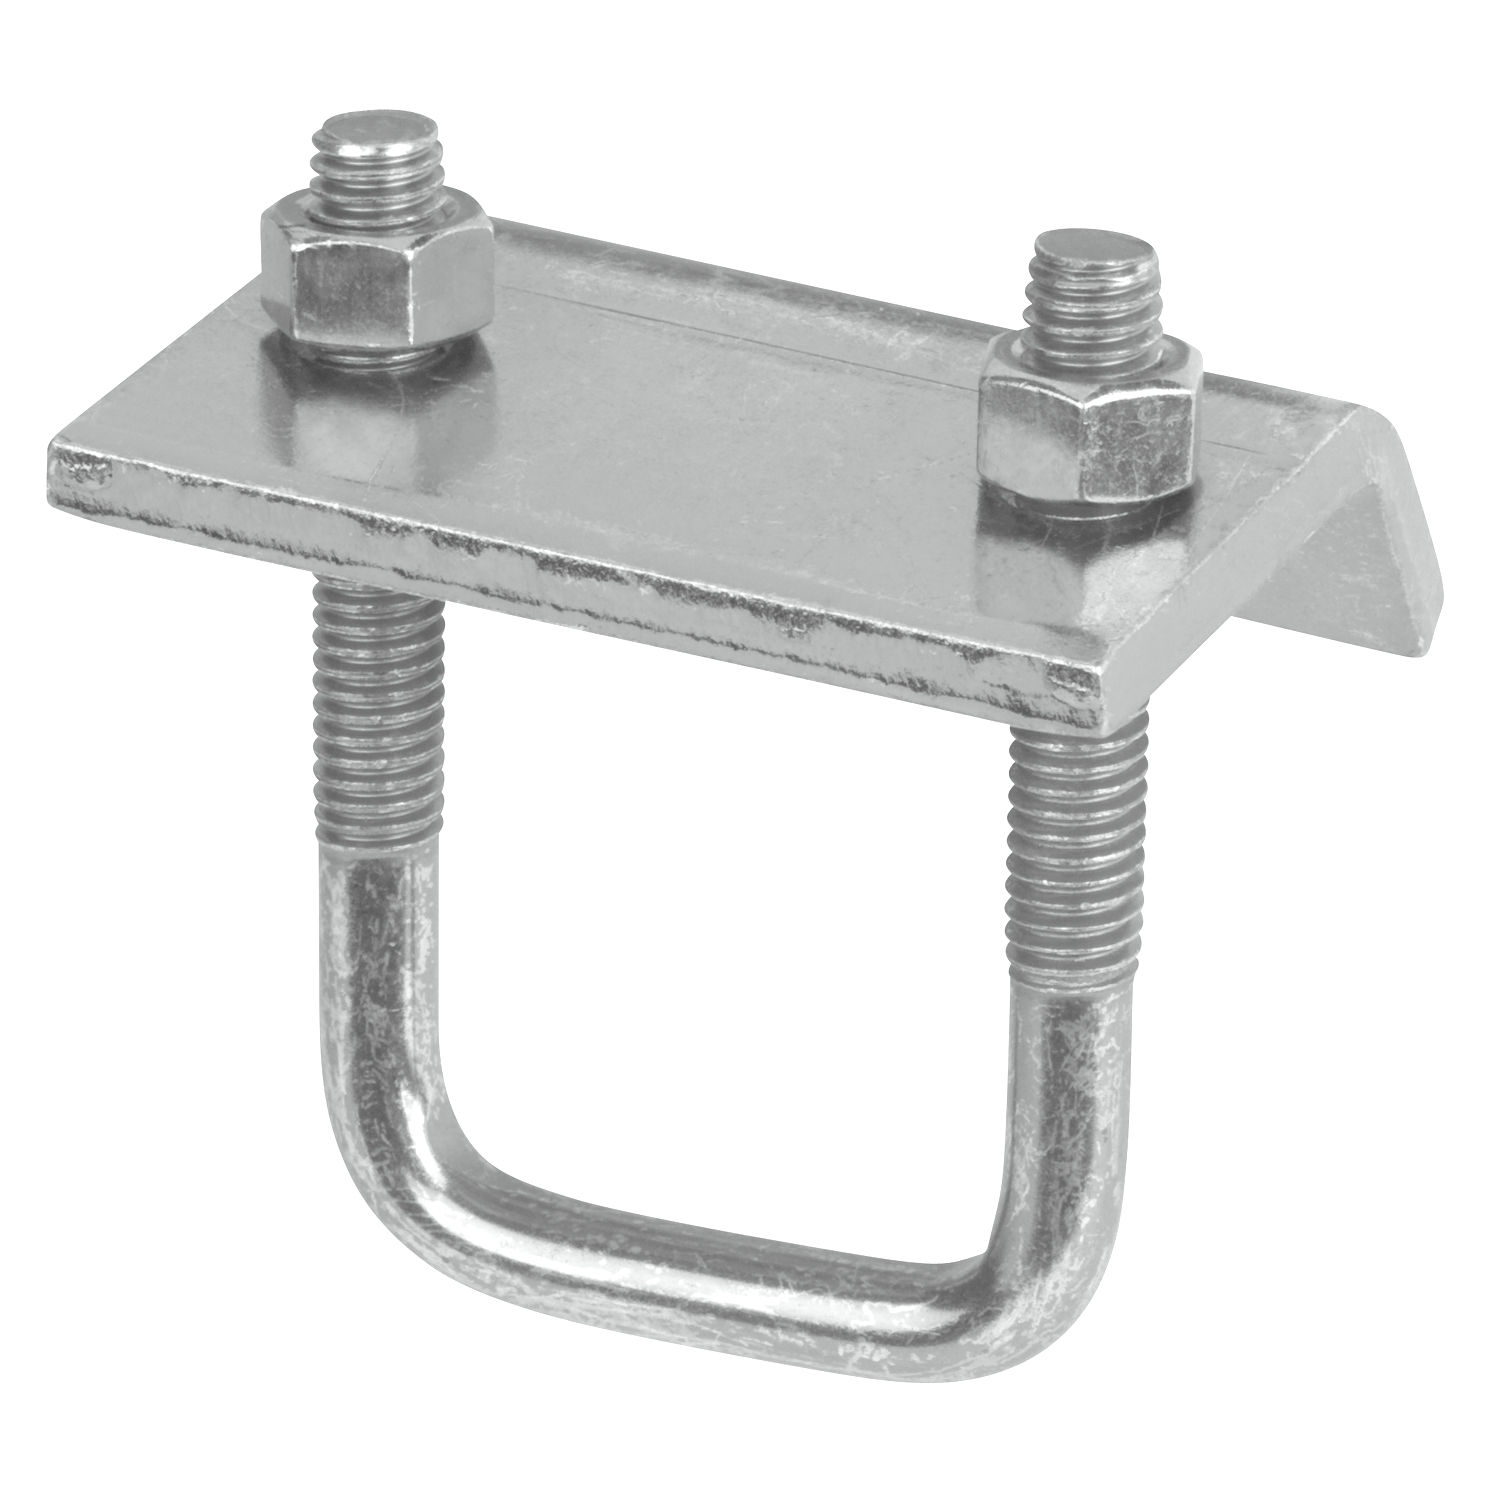 S-STRUT U502HDG BEAM CLAMP